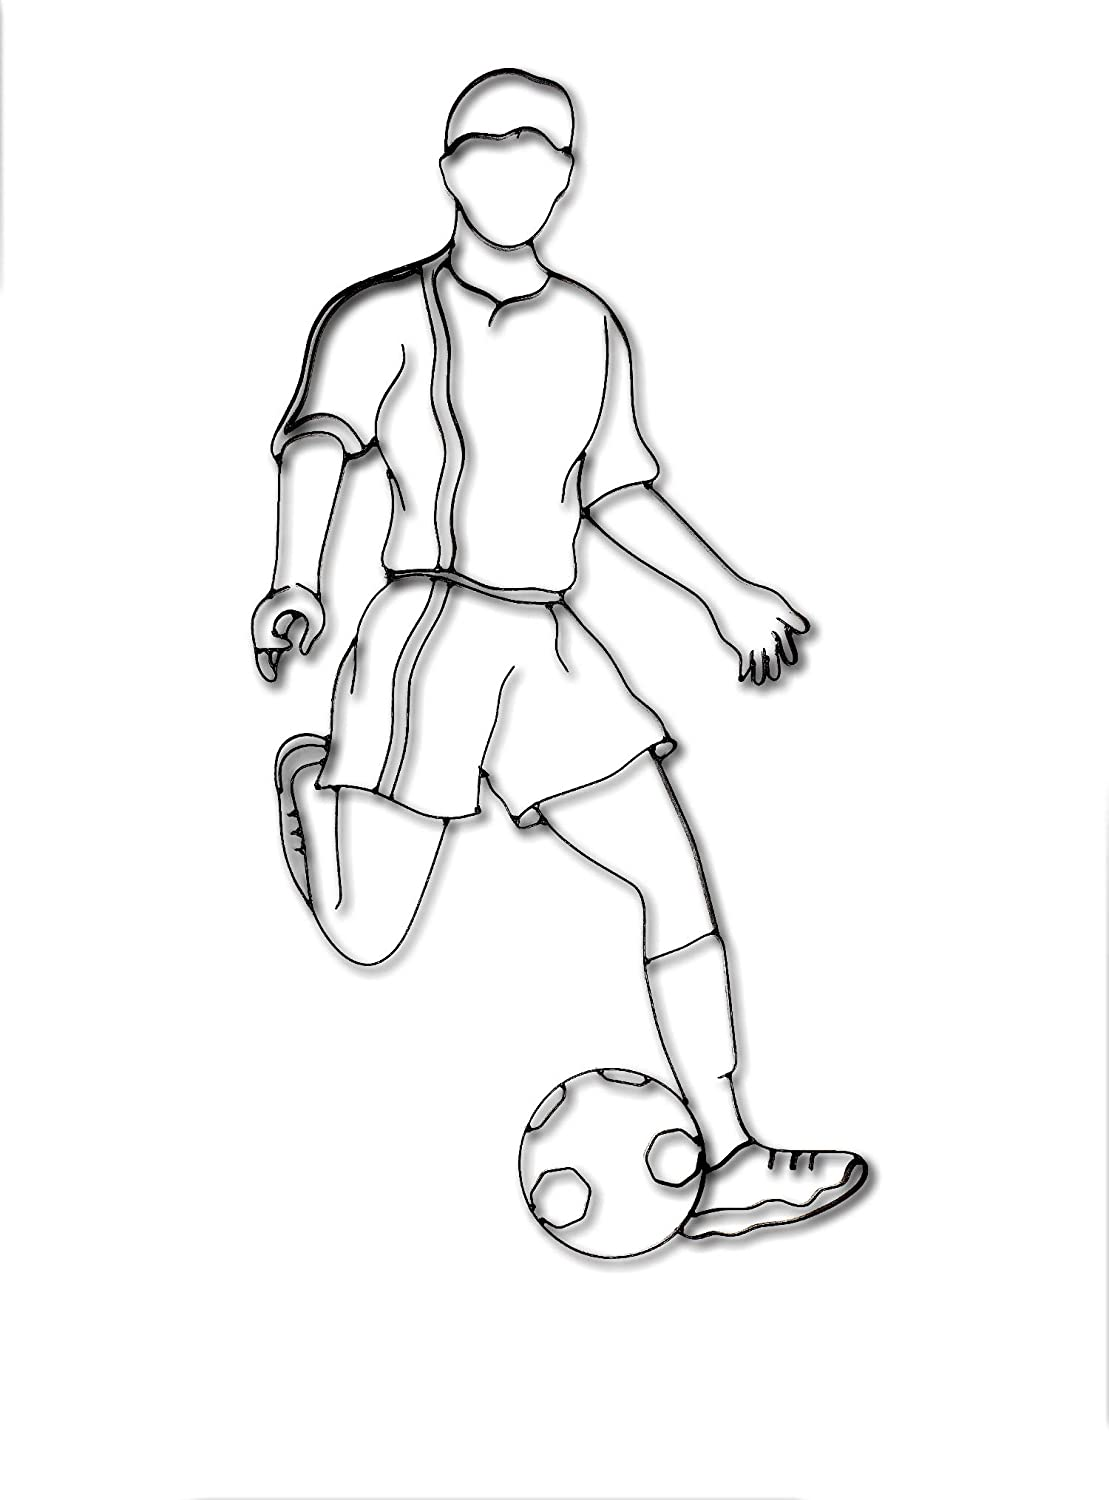 World Unique Imports SM-0731 Soccer Player Metal Wall Décor and Sculpture, Black